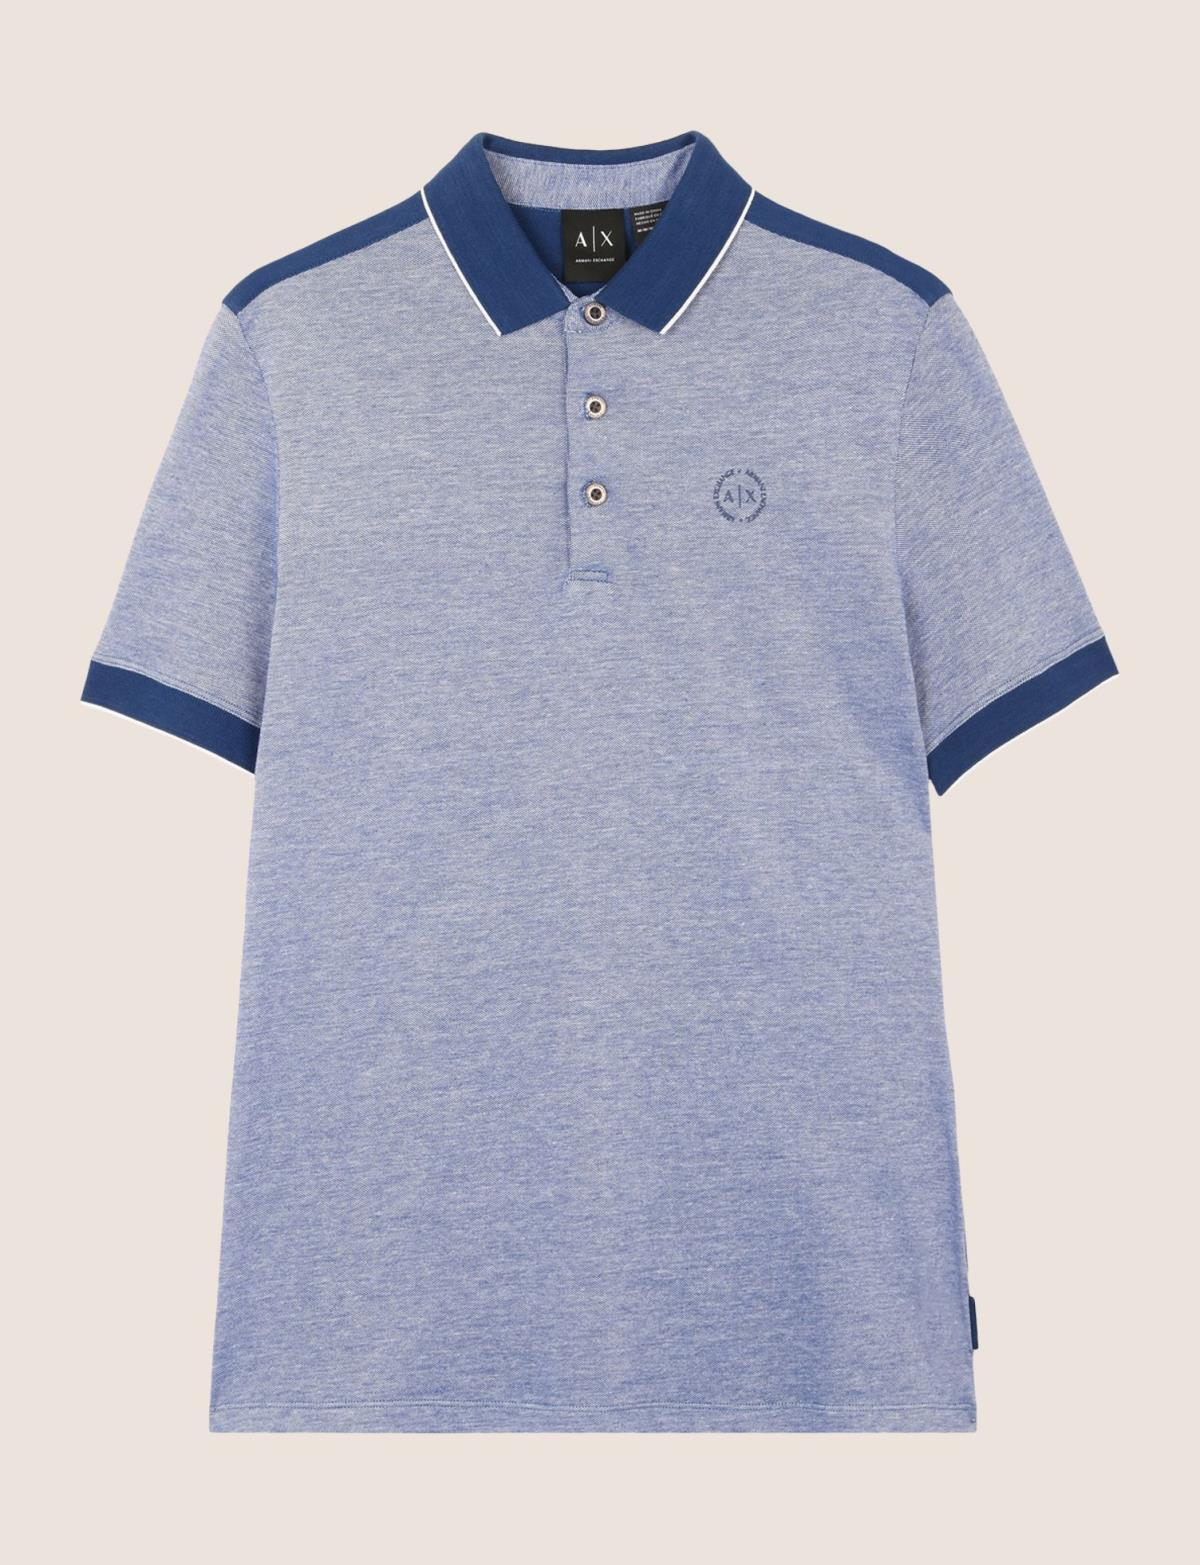 340e19bc4f ARMANI EXCHANGE POLO. ARMANI EXCHANGE 8NZF76